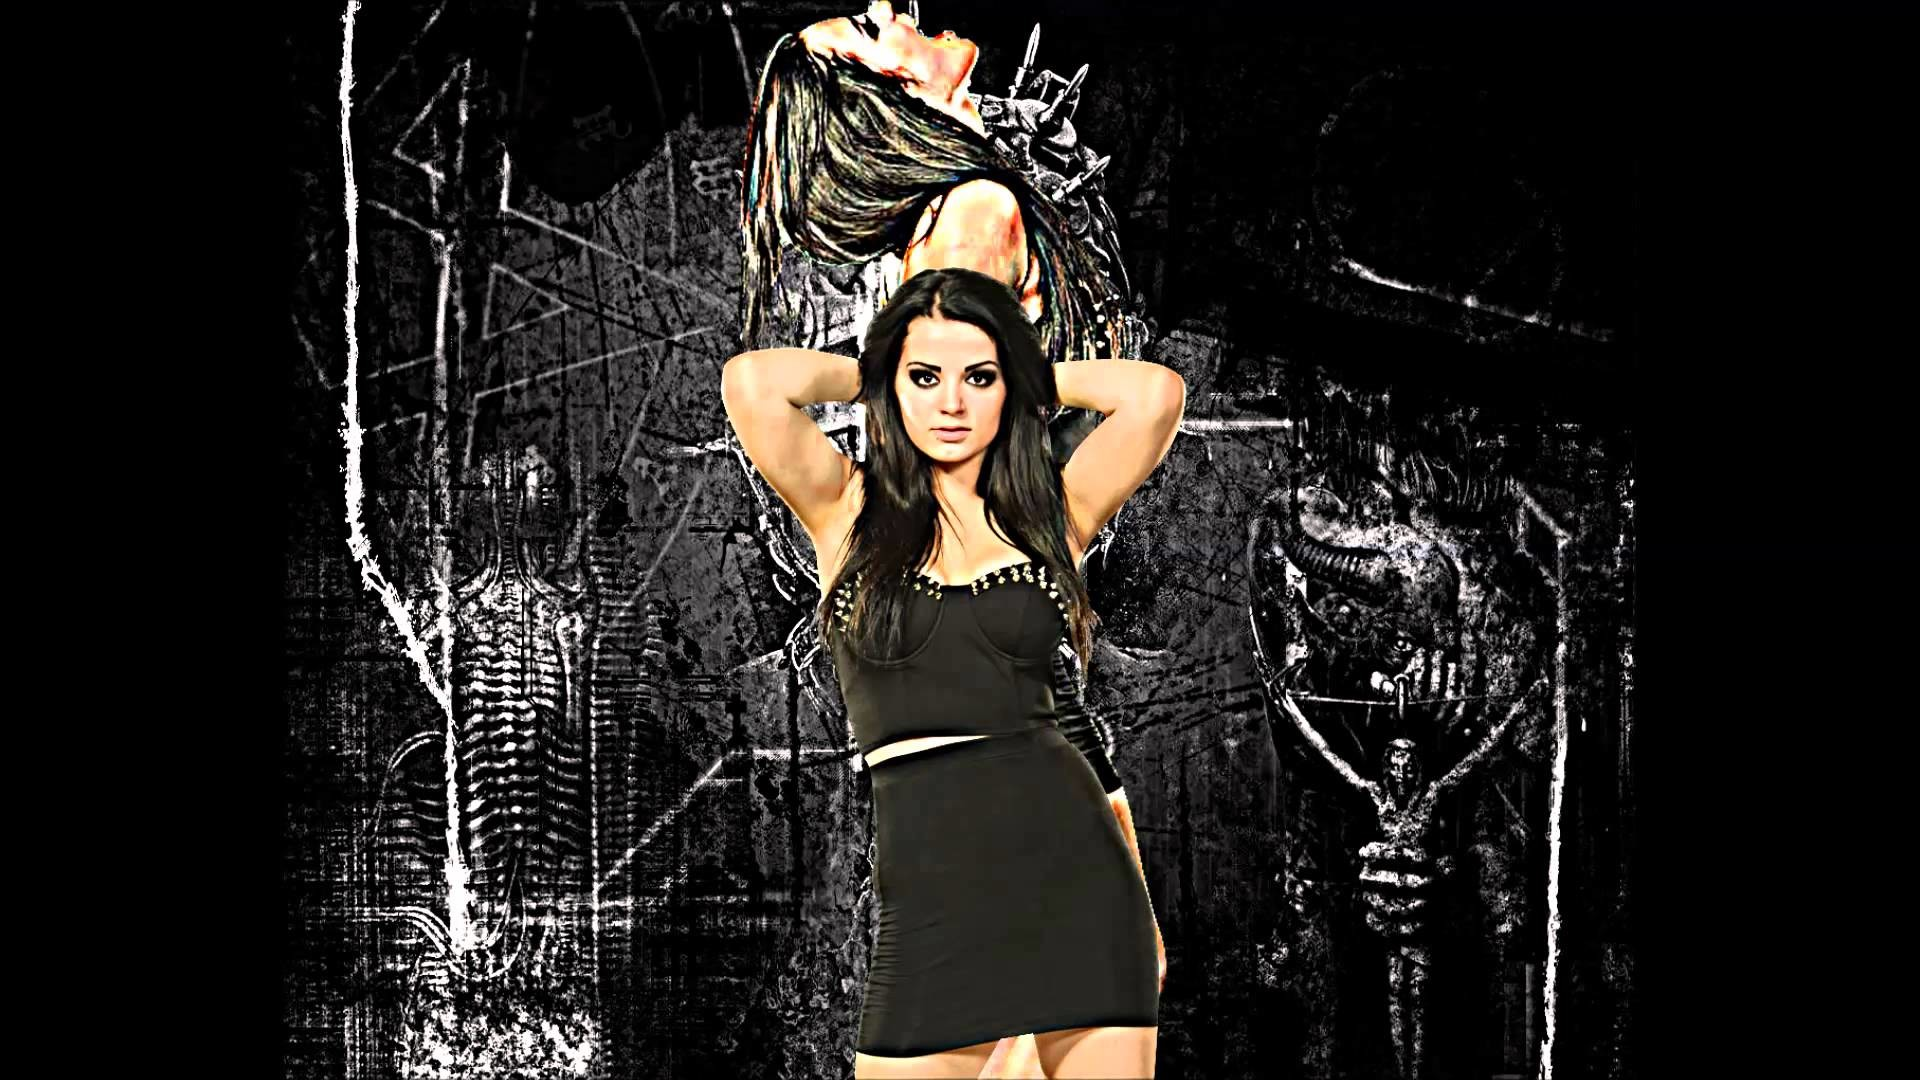 Paige wwe wallpapers 75 images - Wwe wallpaper ...